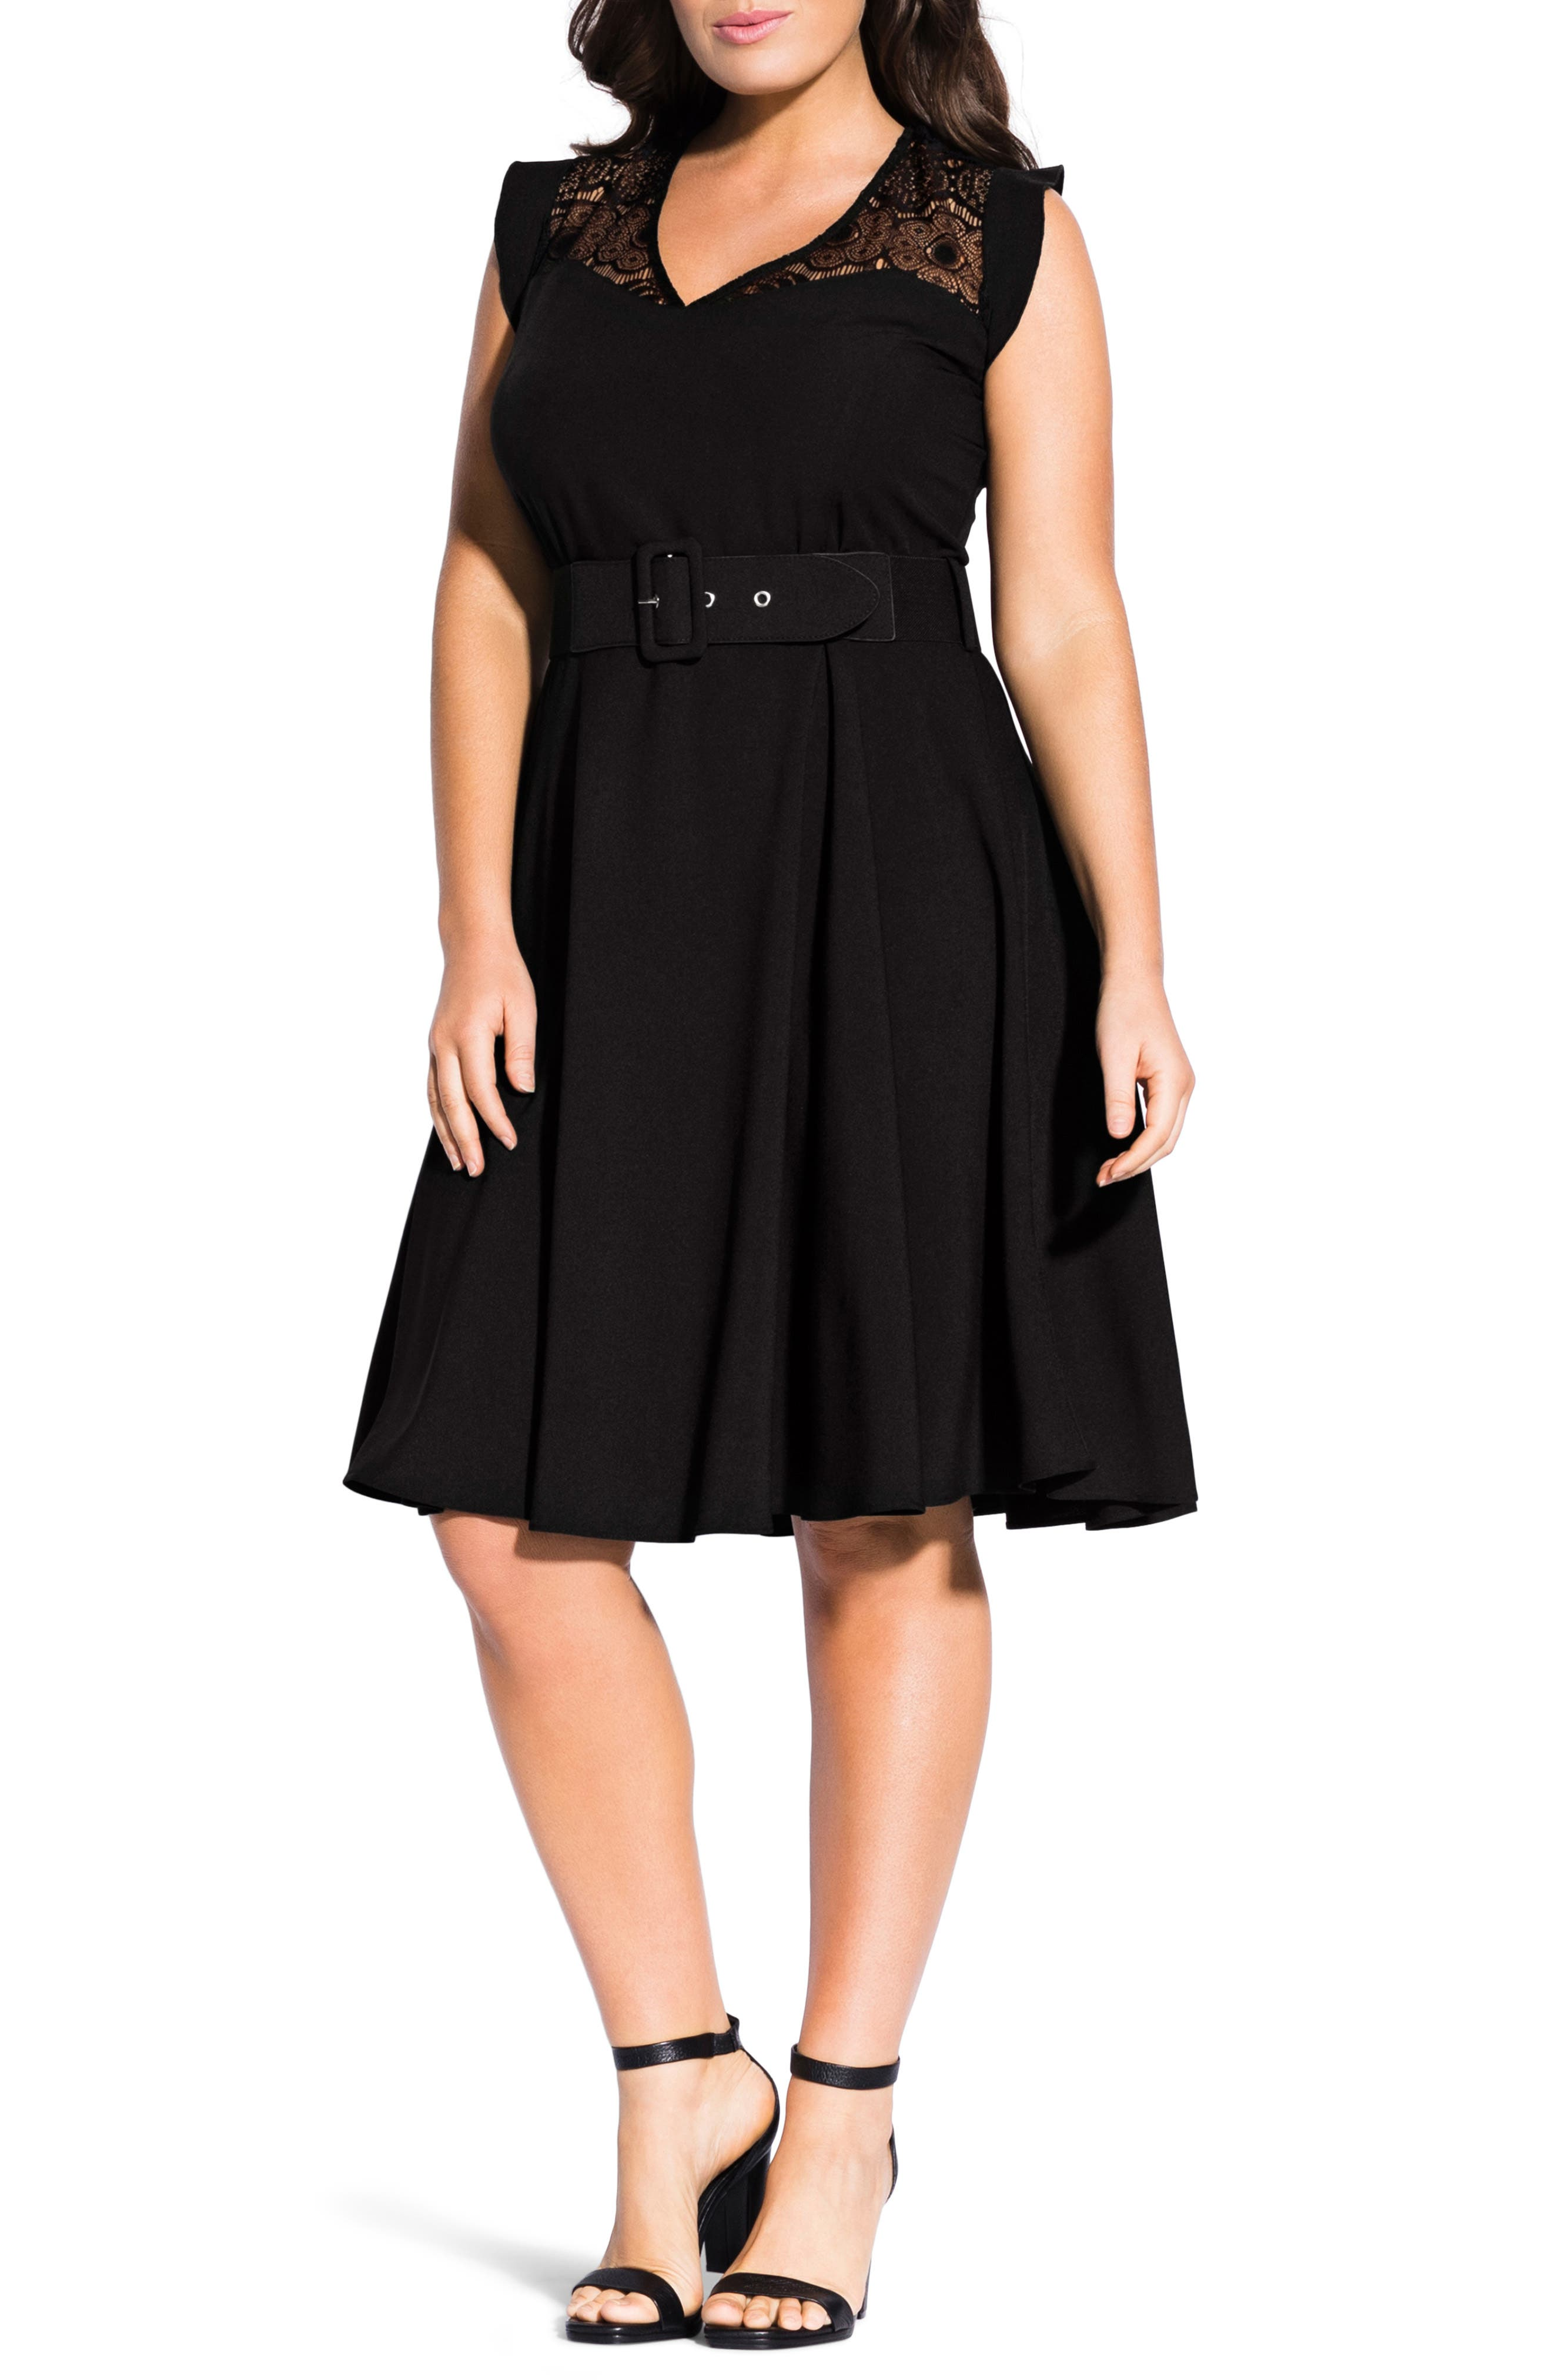 CITY CHIC Lace Yoke Fit & Flare Dress, Main, color, BLACK